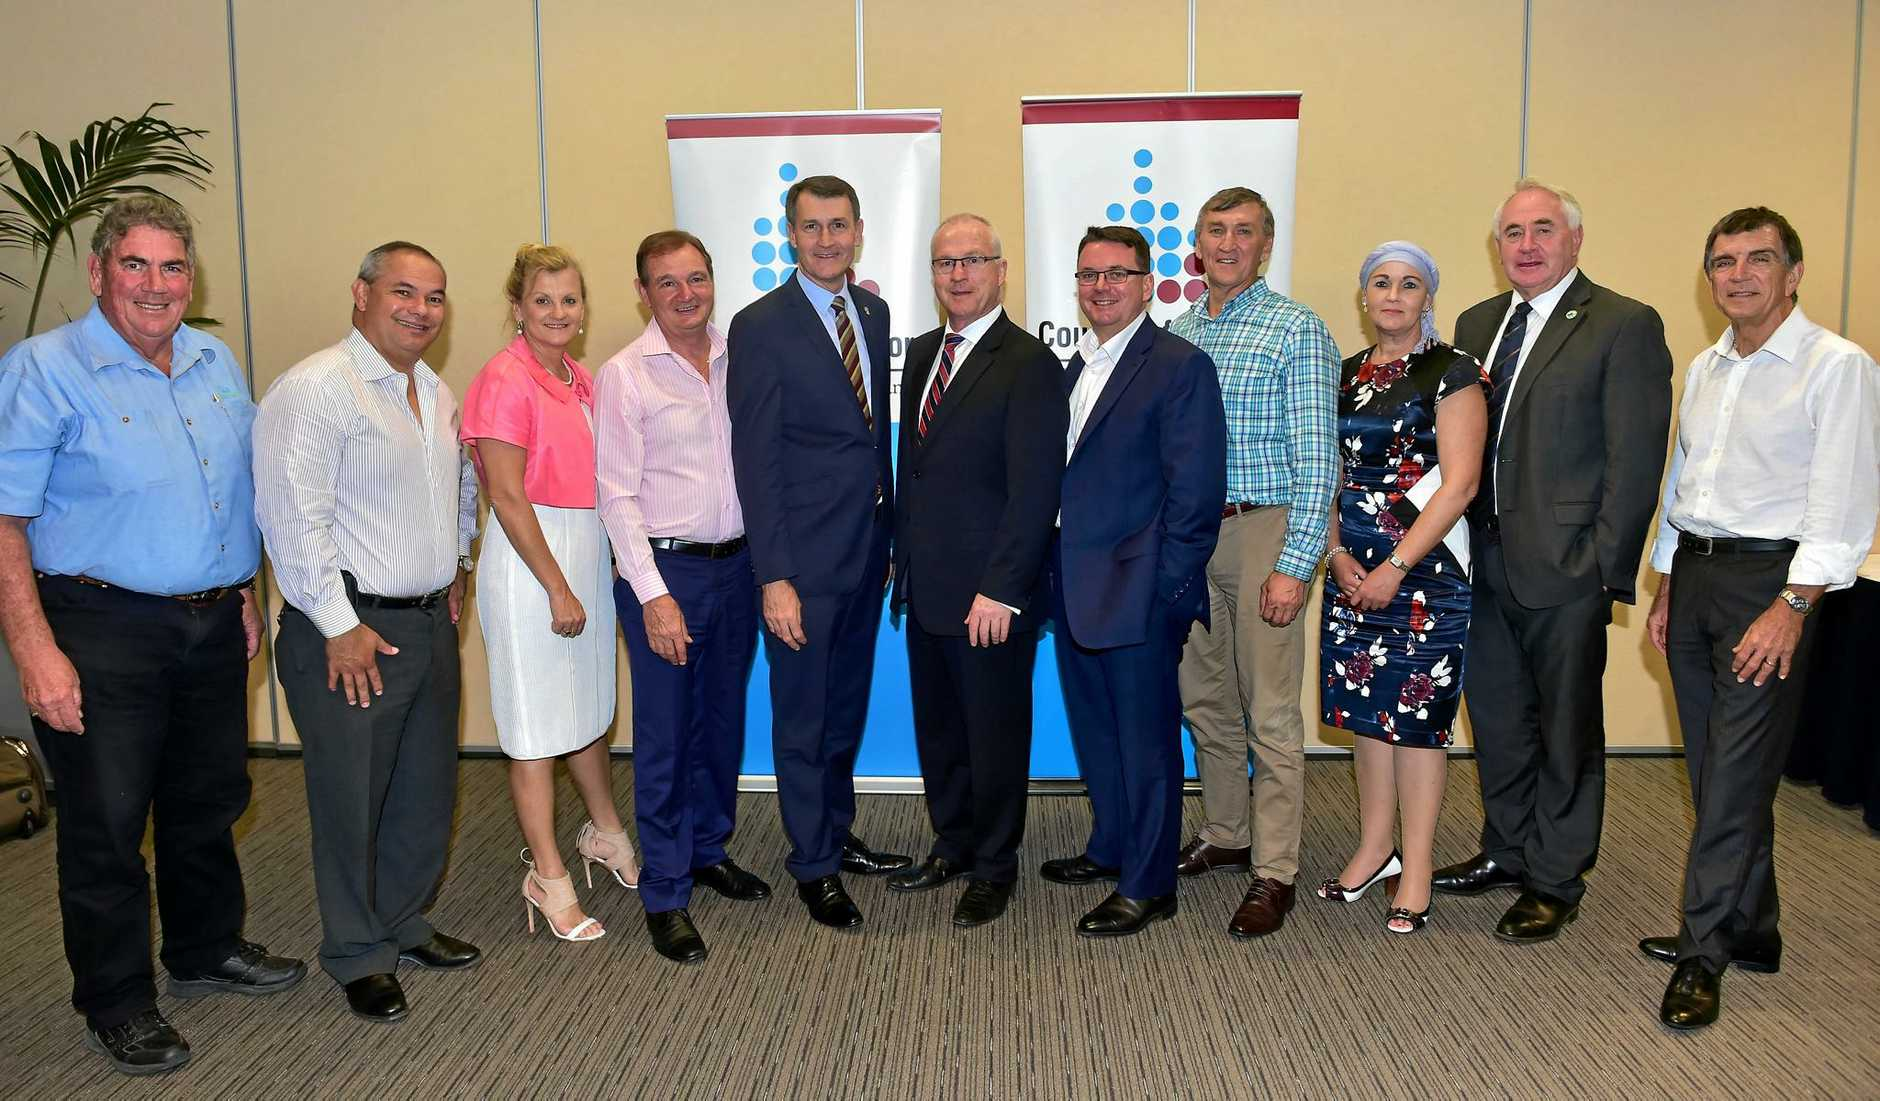 South East Queensland Council of Mayors meet in Mooloolaba in 2016.